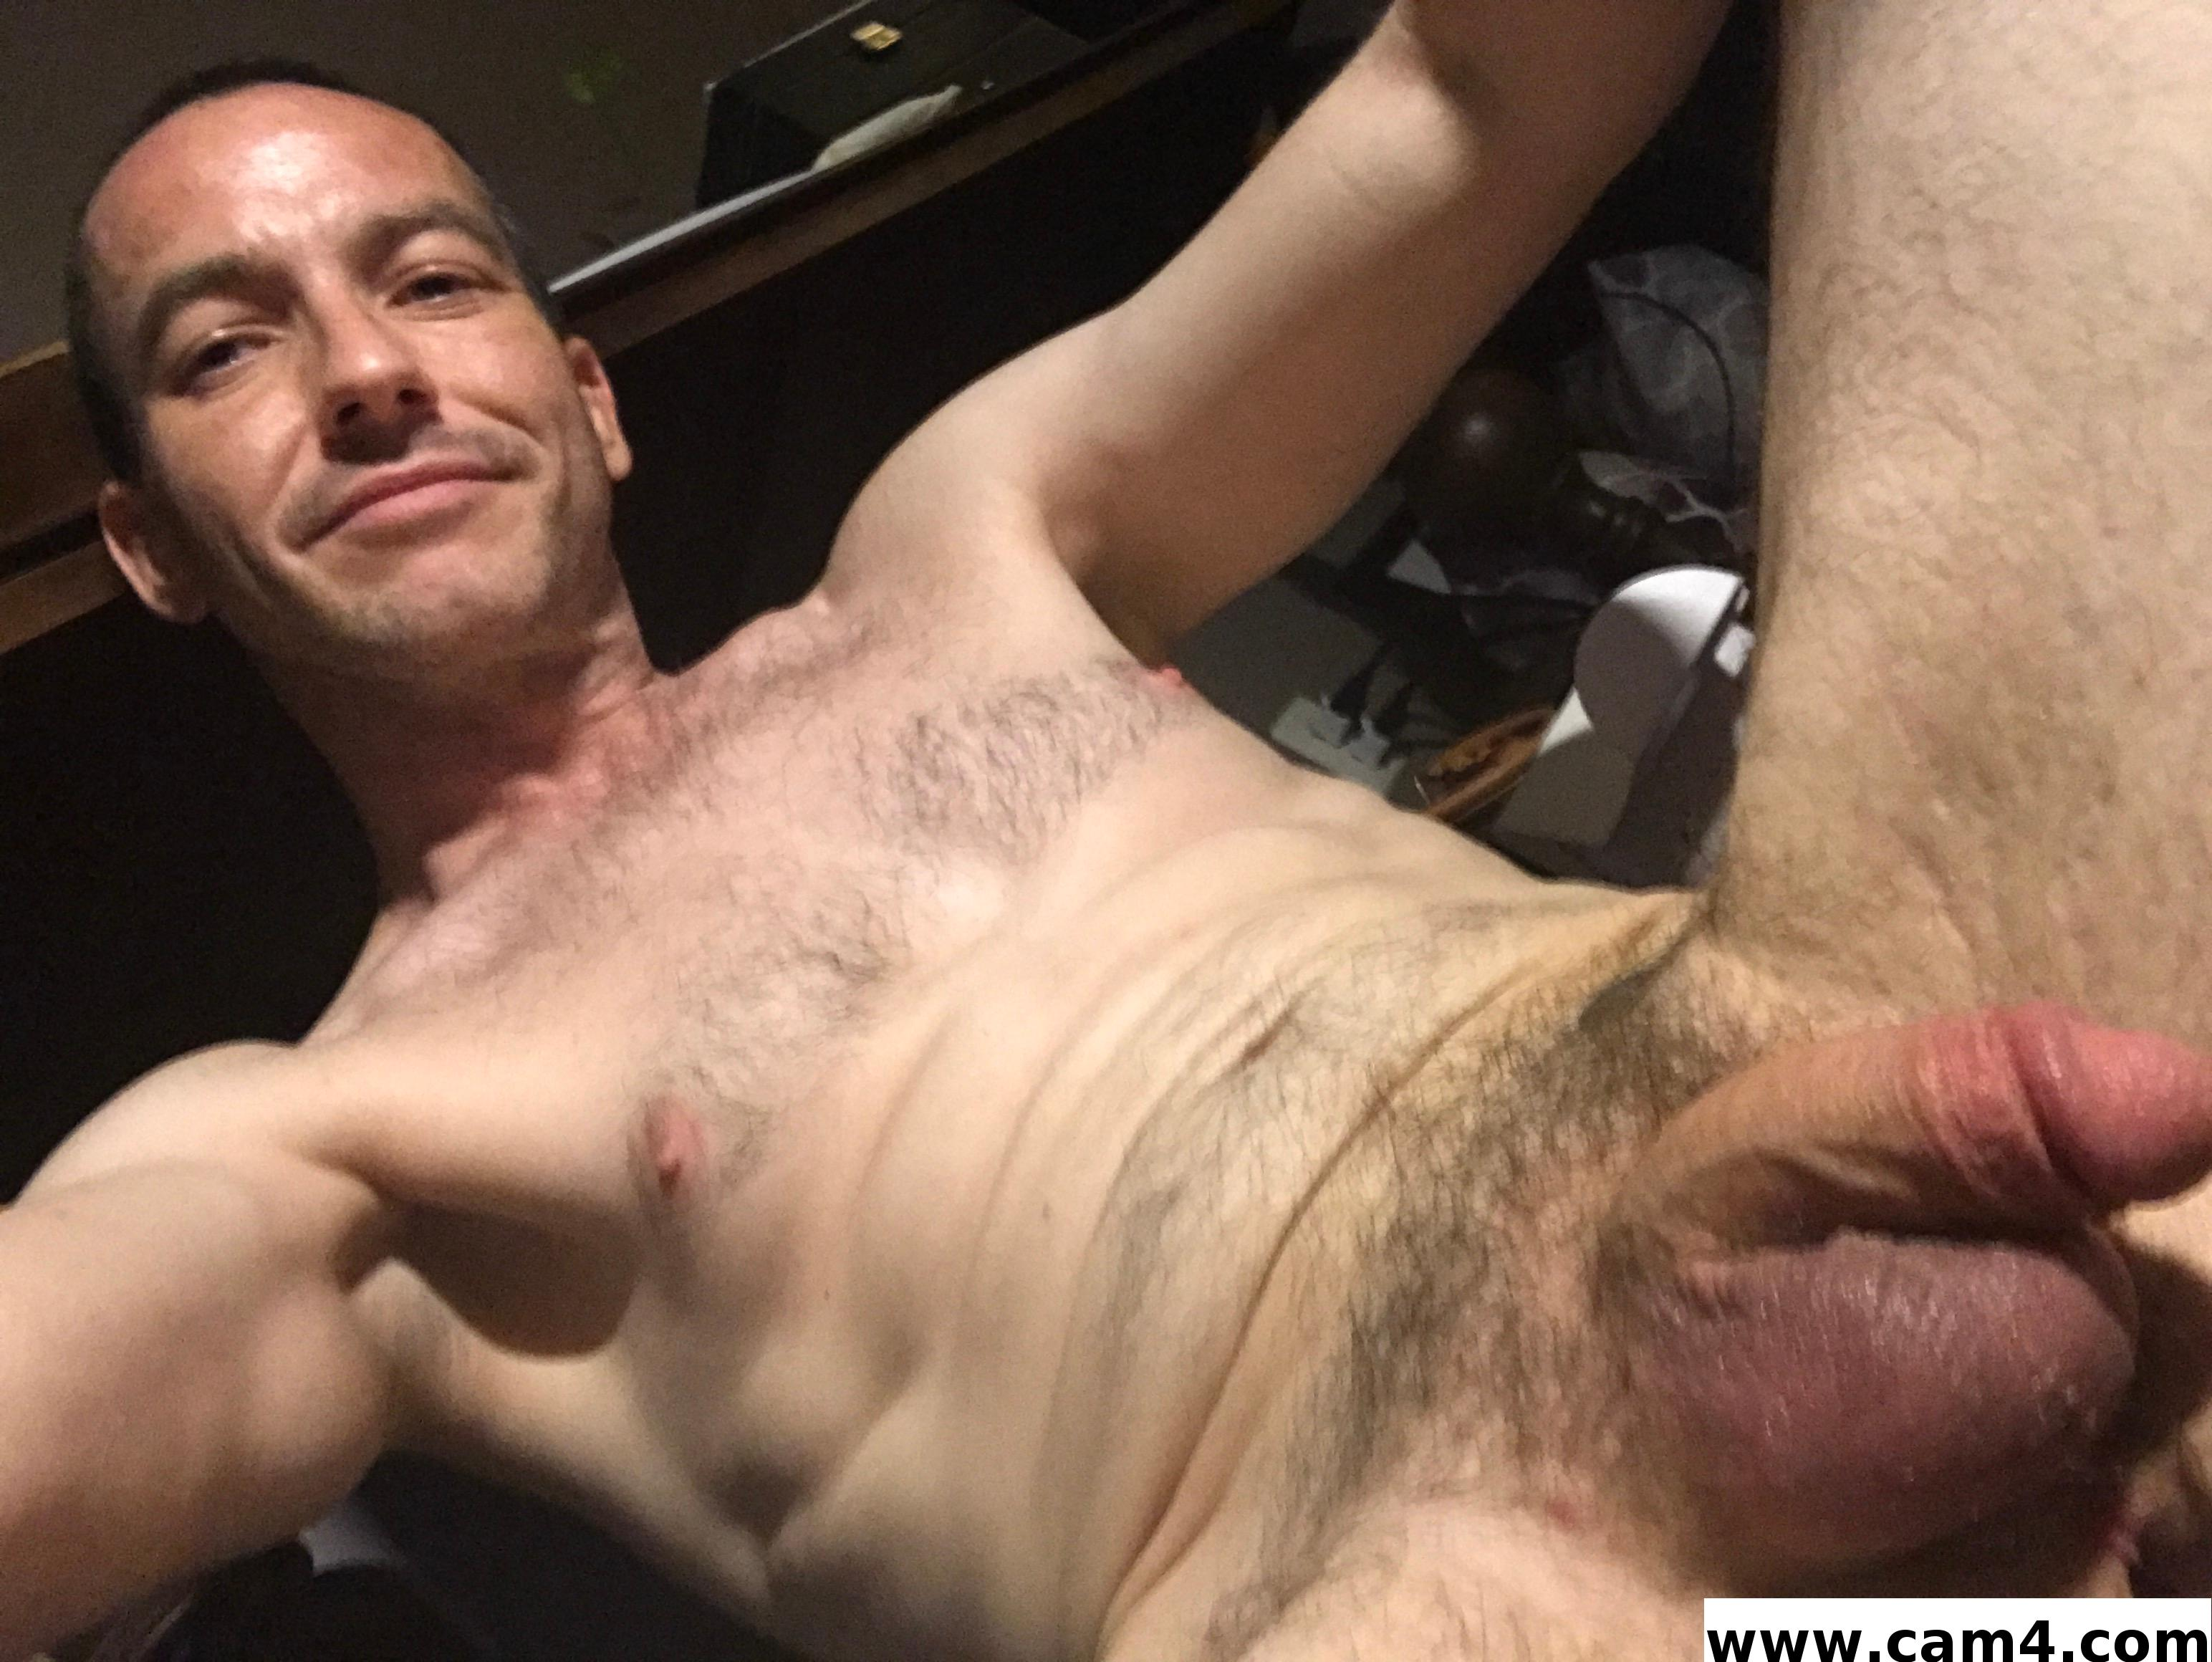 Online chat gay sex